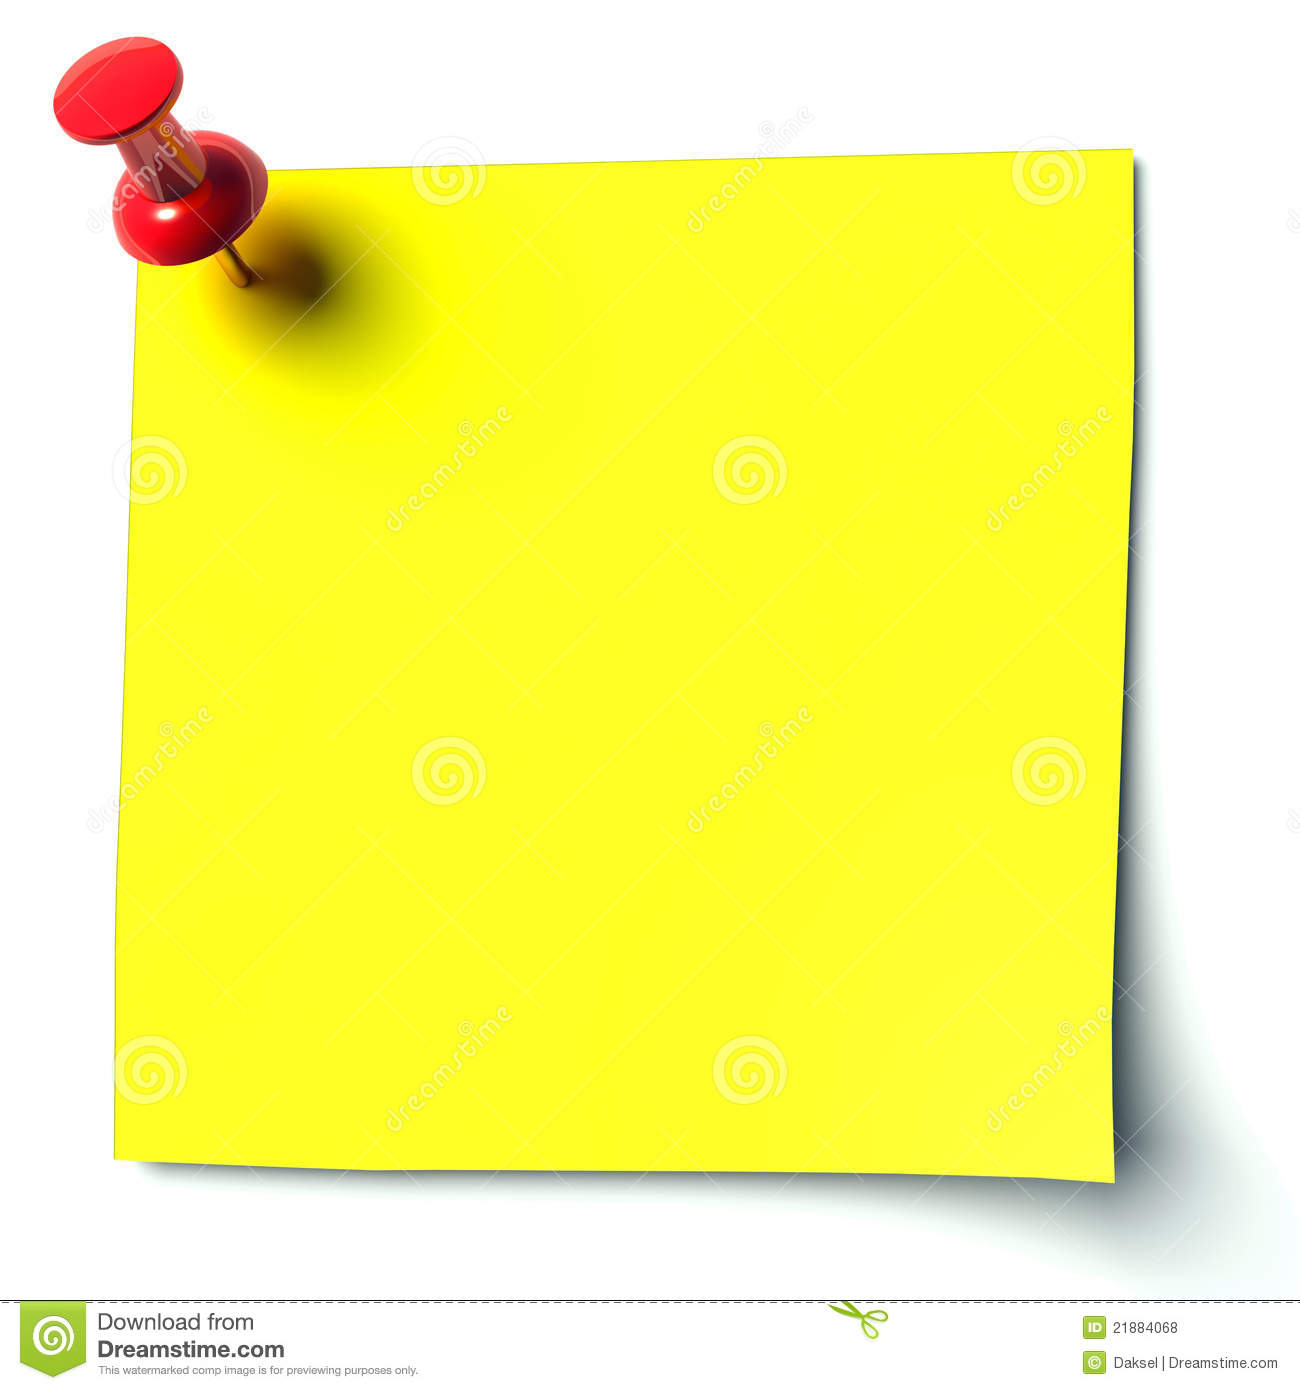 Blank Note Cards >> Yellow Sticker Royalty Free Stock Photos - Image: 21884068